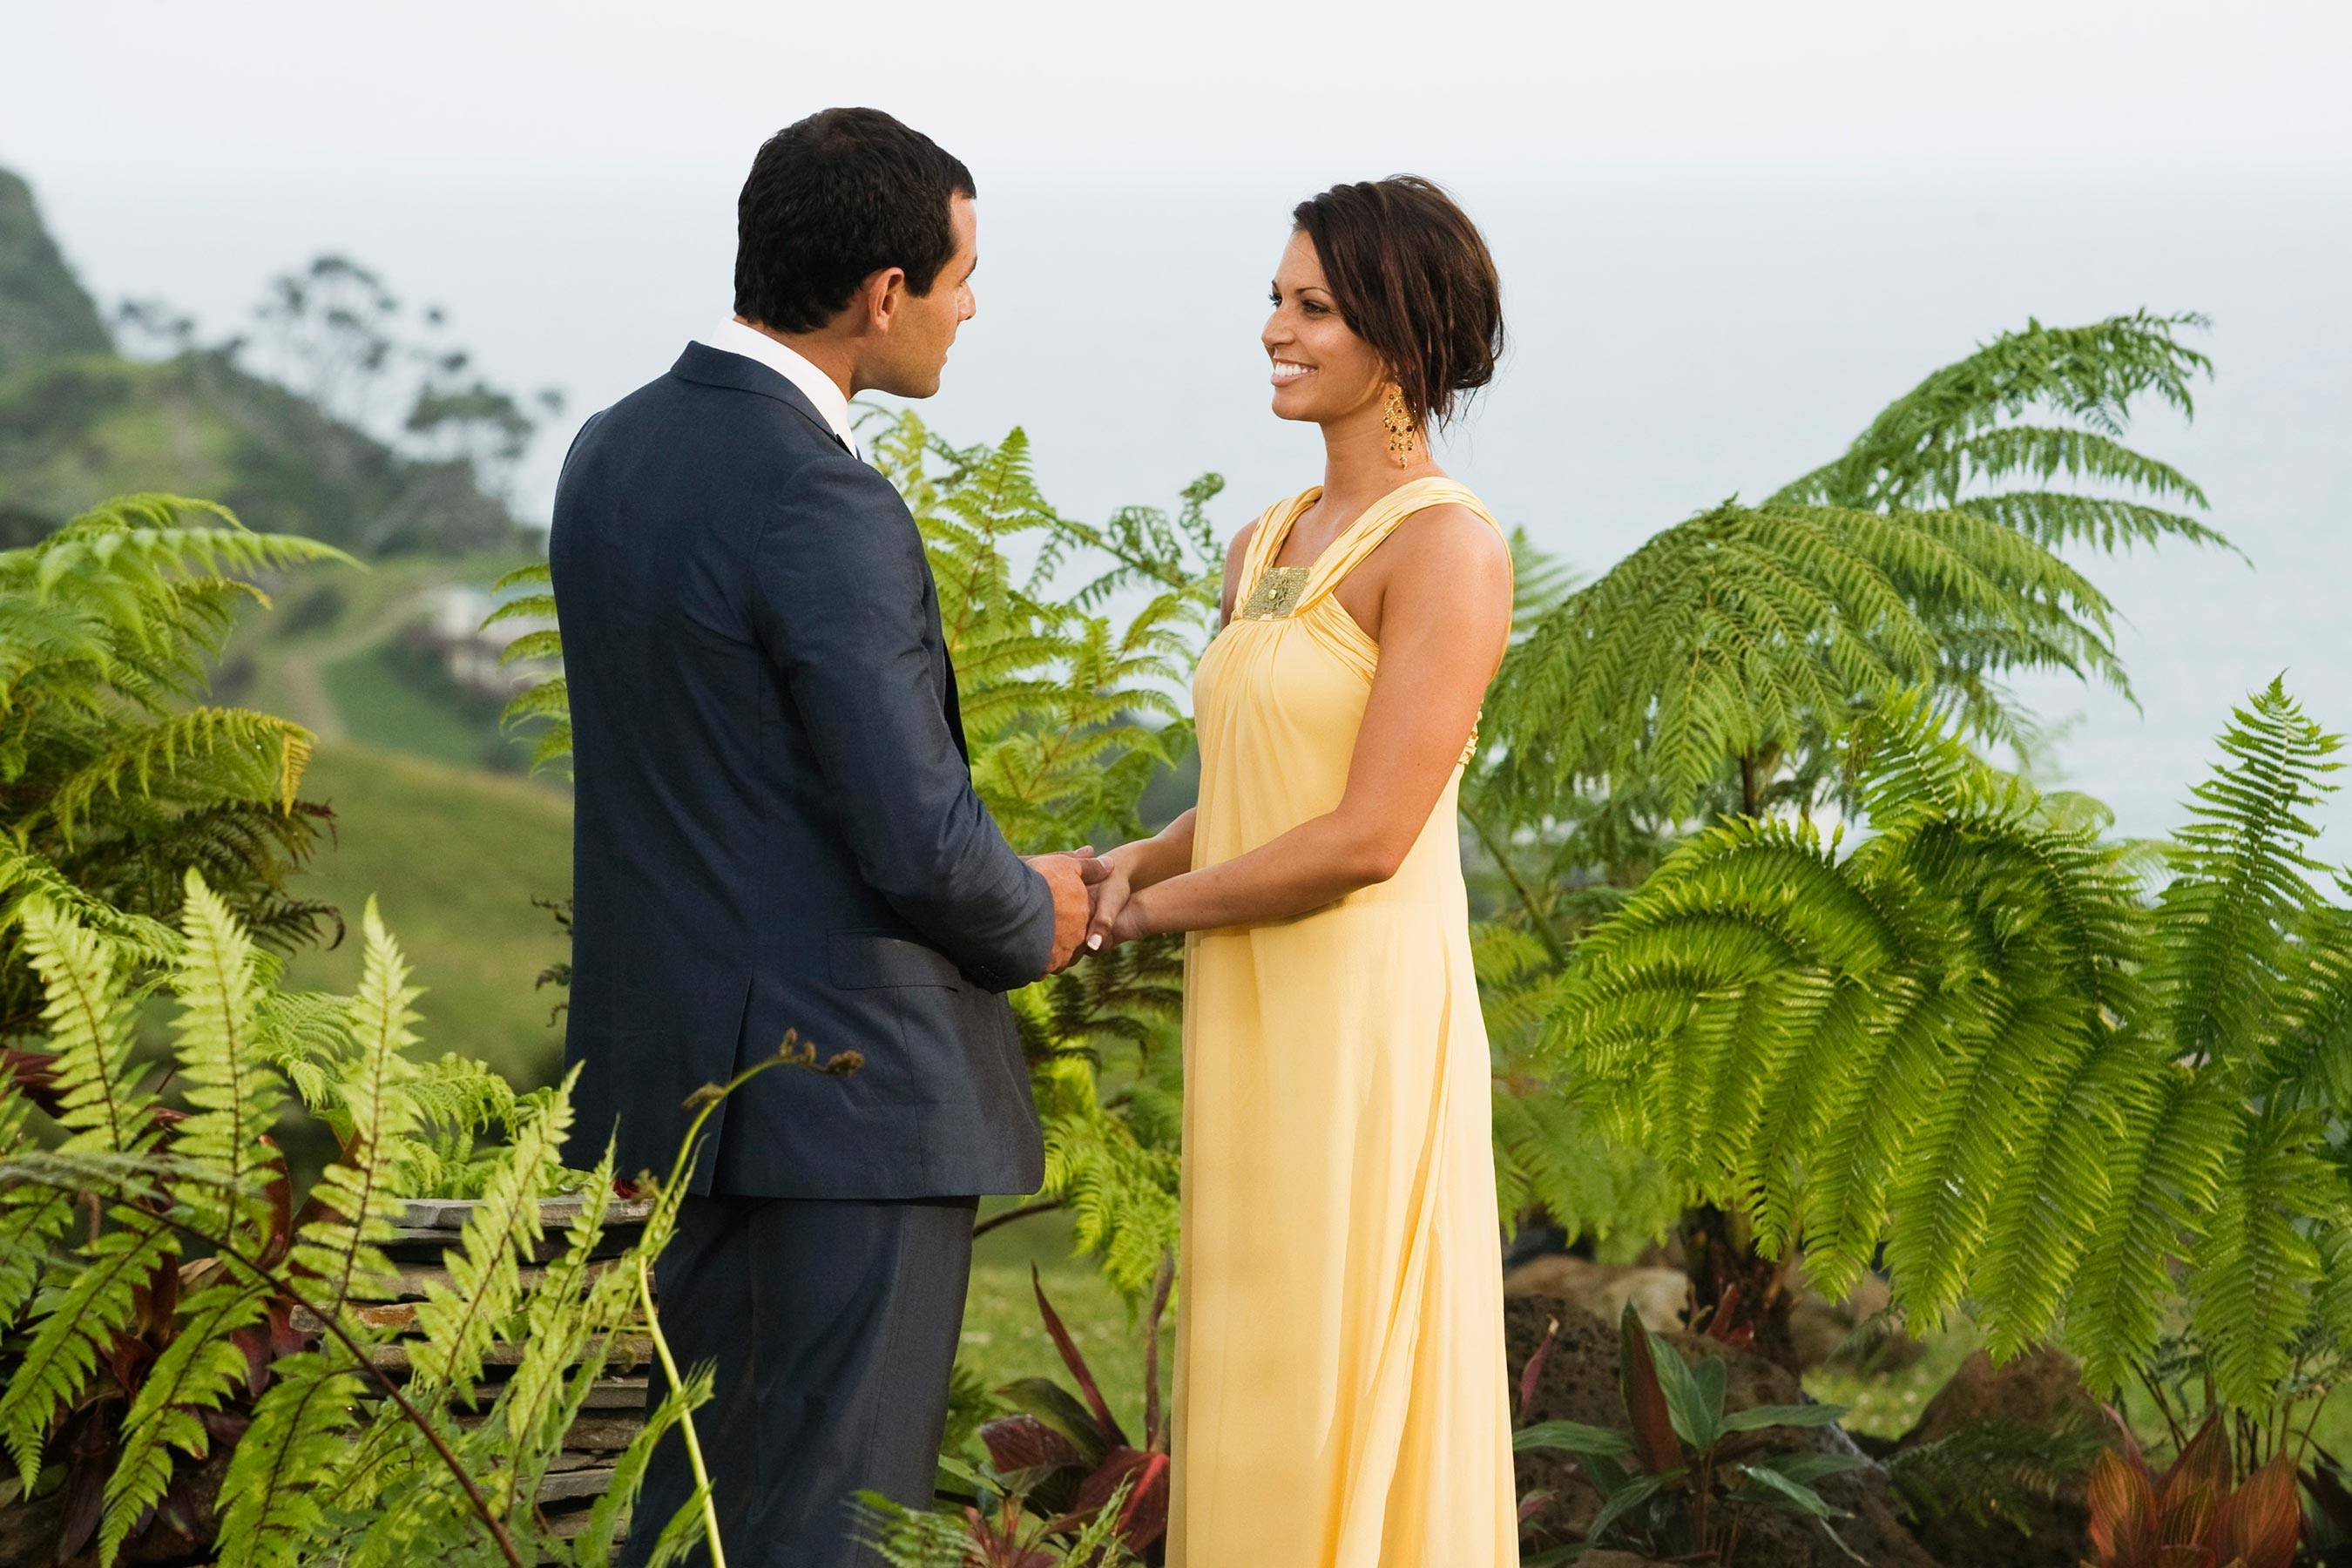 """THE BACHELOR - """"Episode 1308"""" - In this gripping special conclusion, Jason prepares to make one of the most difficult decisions of this life. With his search for love now narrowed down to Melissa and Molly, Jason brings his son, Ty, to New Zealand to meet the remaining two women. The bachelorettes are also introduced to his family. Finally, the women lay their hearts on the line, each trying to guarantee that she will be the one to get Jason's final rose. But the Bachelor is stunned when DeAnna, the woman who broke his heart, shows up in New Zealand to see him. In one of the most romantic and dramatic moments in """"Bachelor"""" history, Jason makes a decision that will change his life forever, on the season finale of """"The Bachelor,"""" MONDAY, MARCH 2 (8:00-10:02 p.m., ET), on the ABC Television Network. (ABC/MATT KLITSCHER)"""